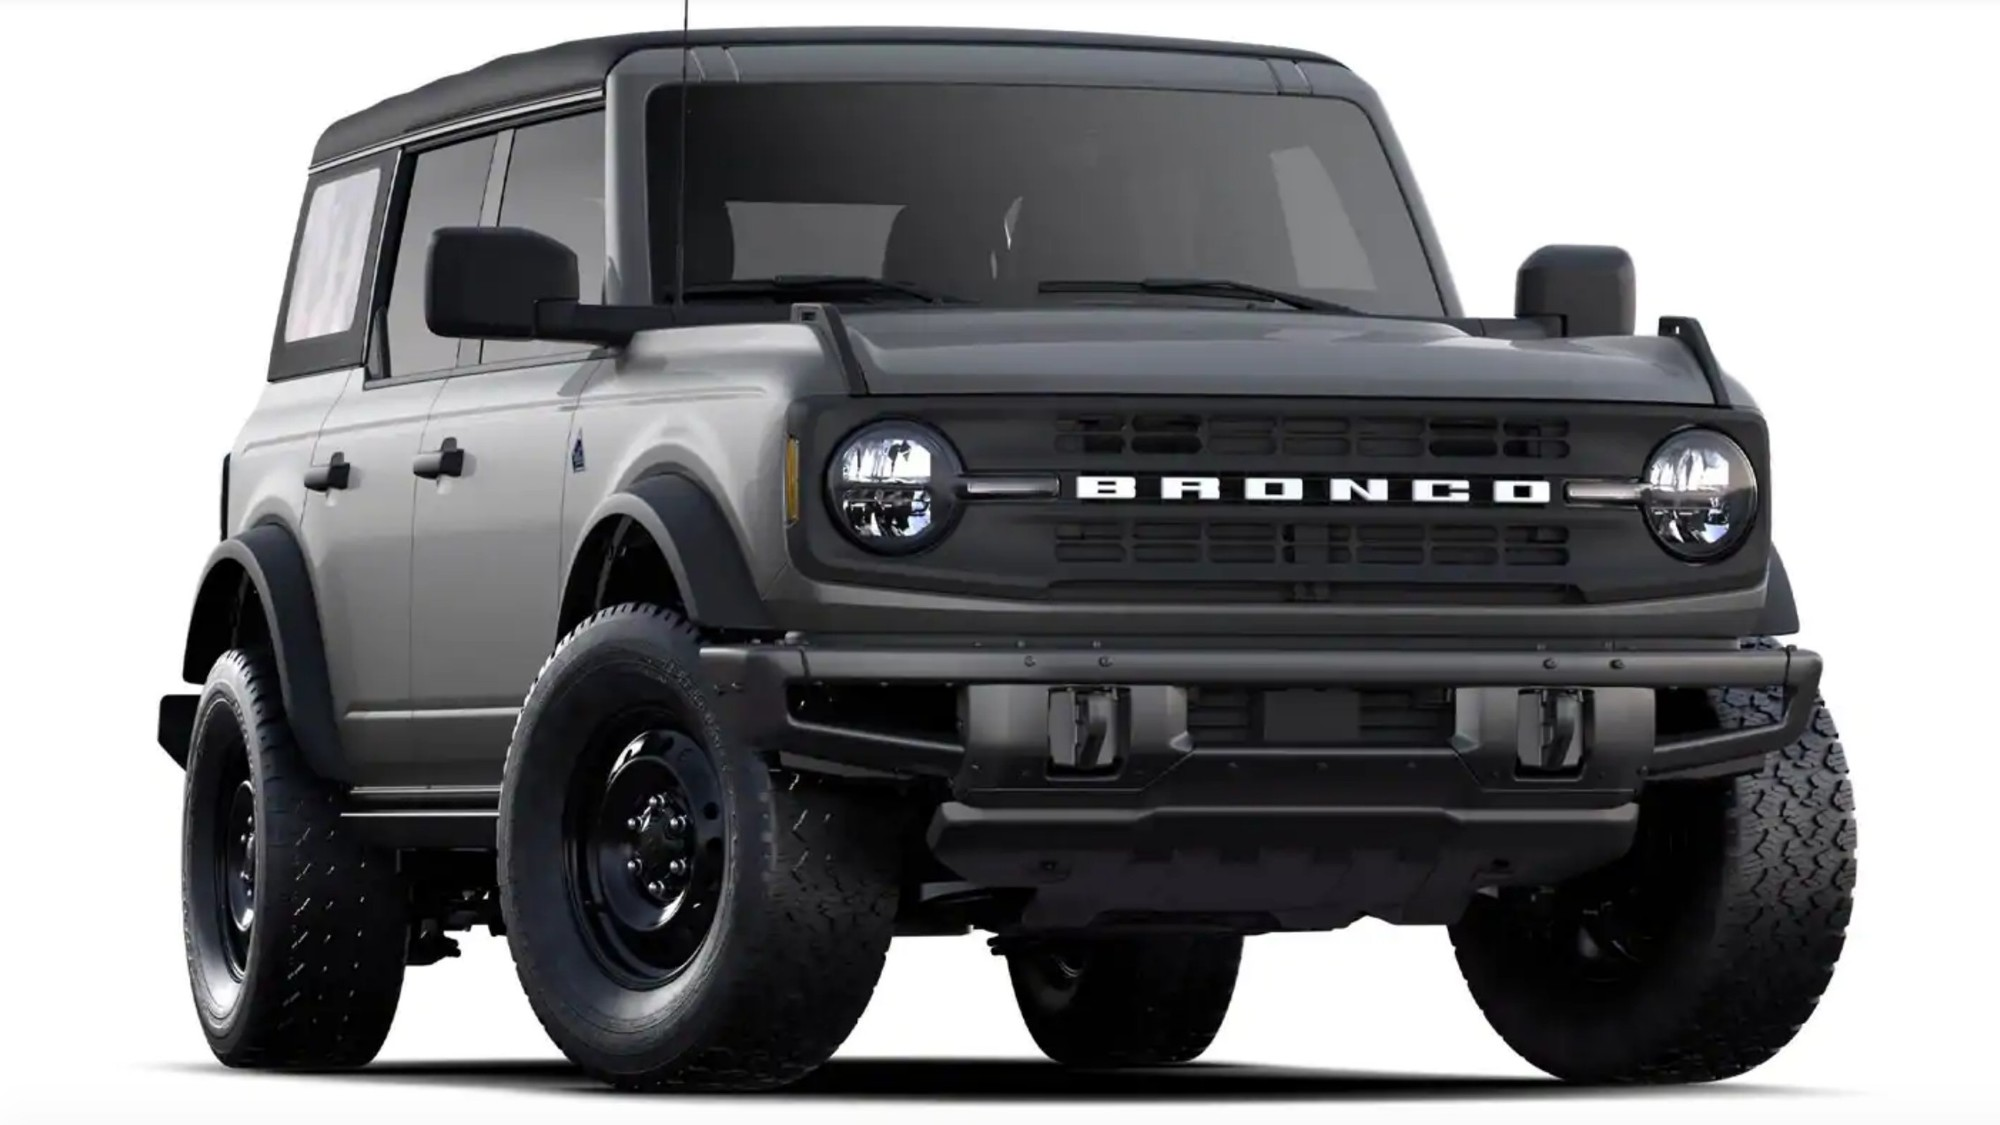 Bronco-Shares-the-Same-Architecture-as-the-Ranger